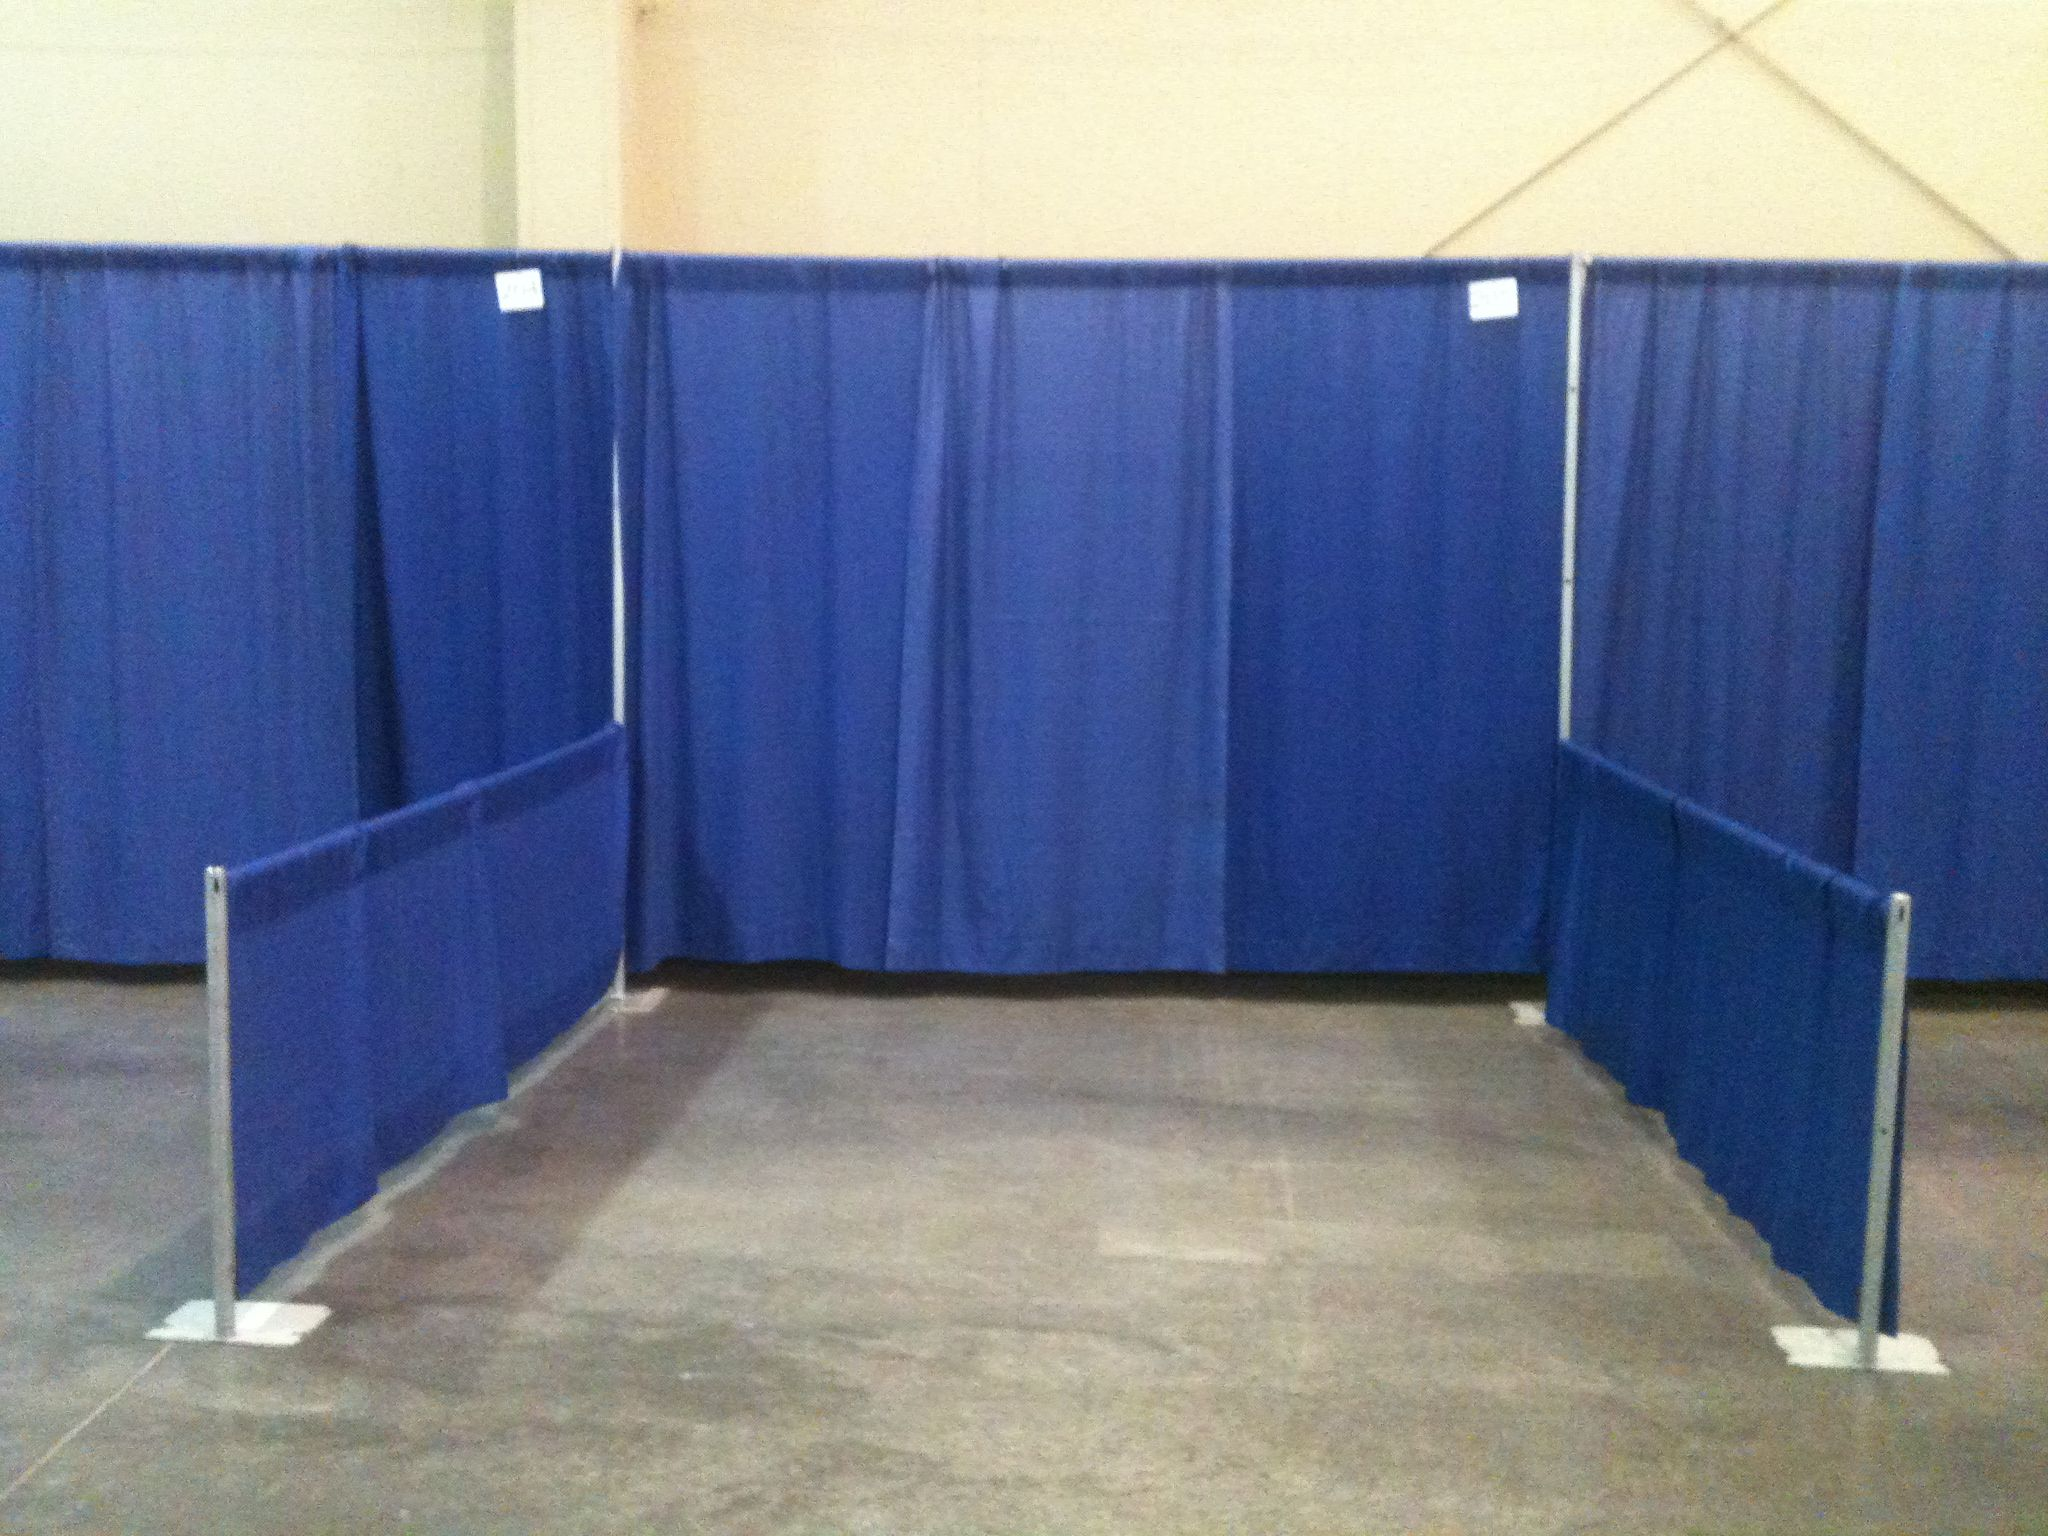 2012 Big Horn Outdoor Show 10x10 Booth Before Set Up